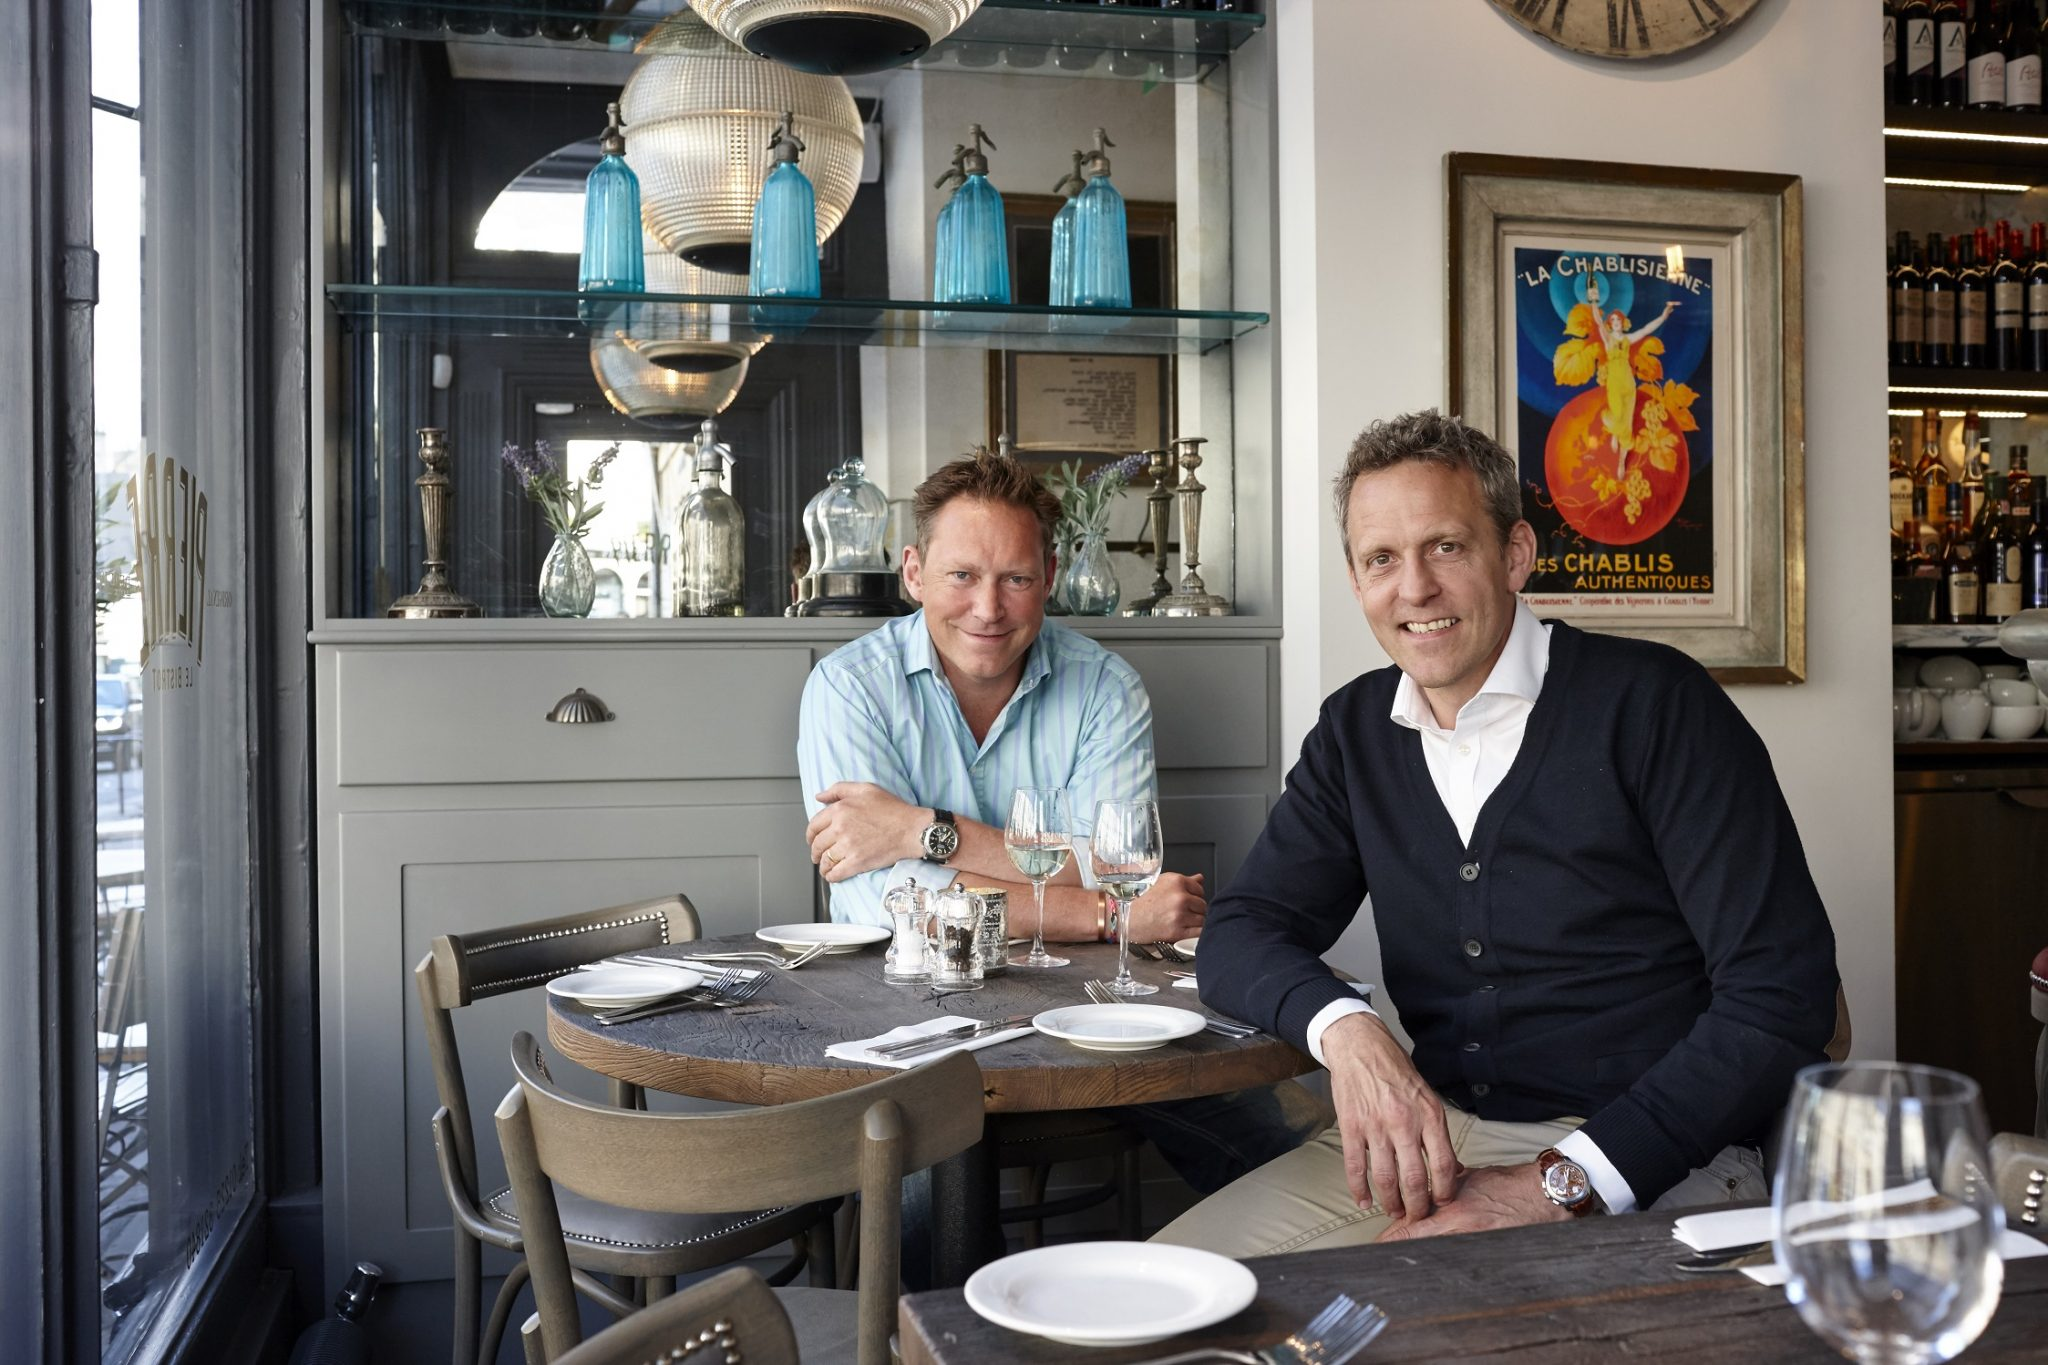 Good news for Le Bistrot Pierre foodie fans: Livingbridge says 'Bonjour' to acclaimed independent restaurant group